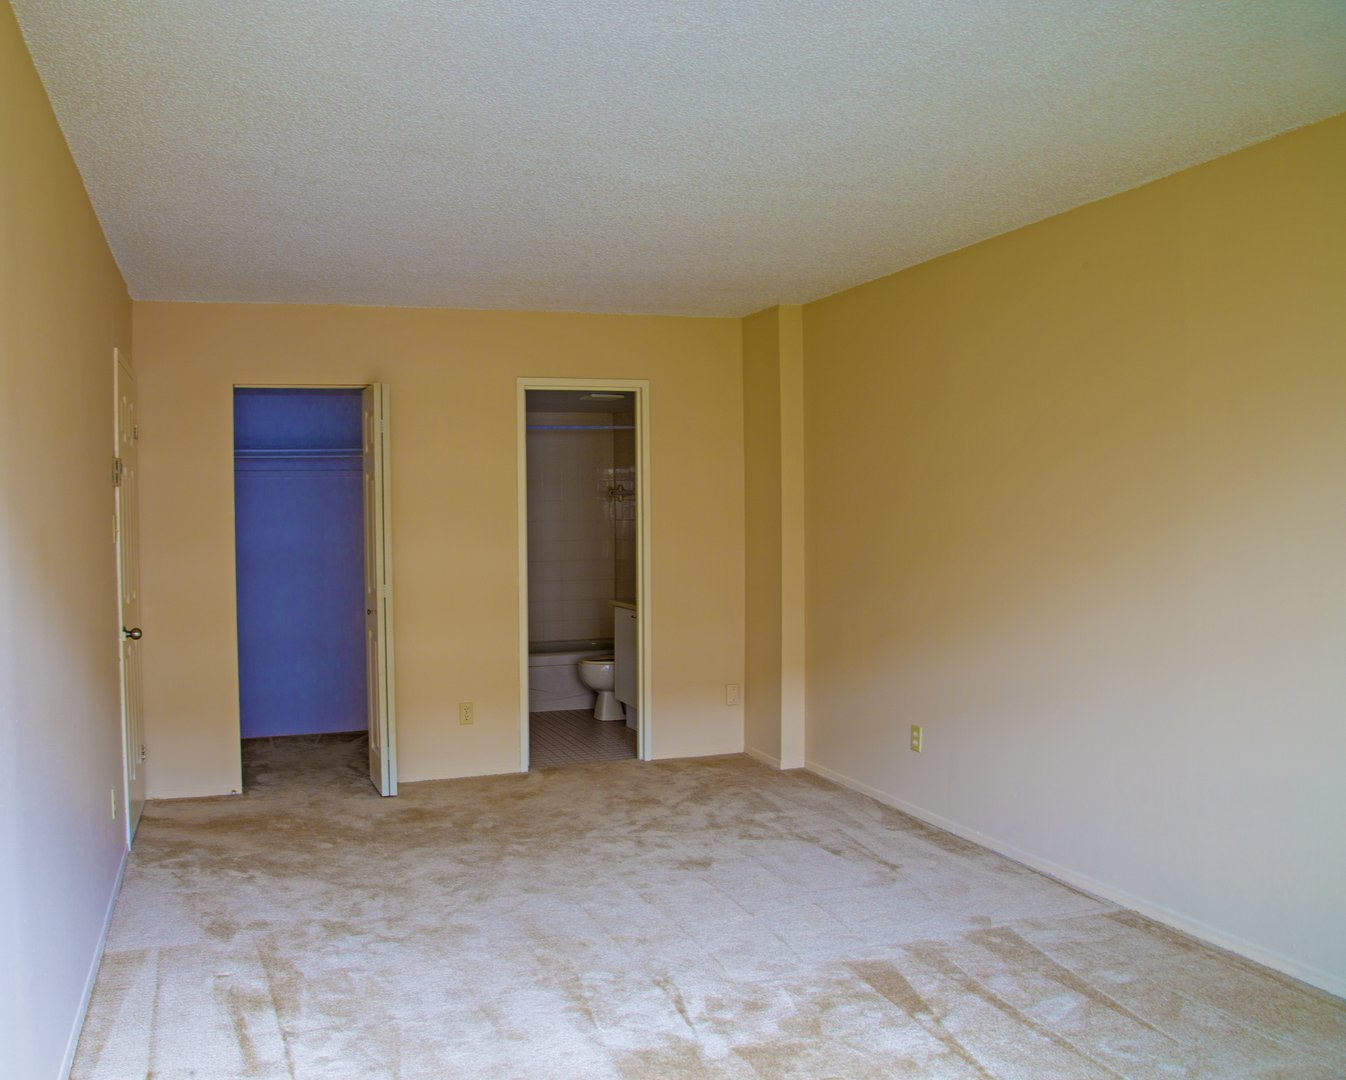 High-Rise Apartment for rent at 50 Quintin, suite 111, Ville Saint-Laurent, QC. This is the empty room with vaulted ceiling and carpet.